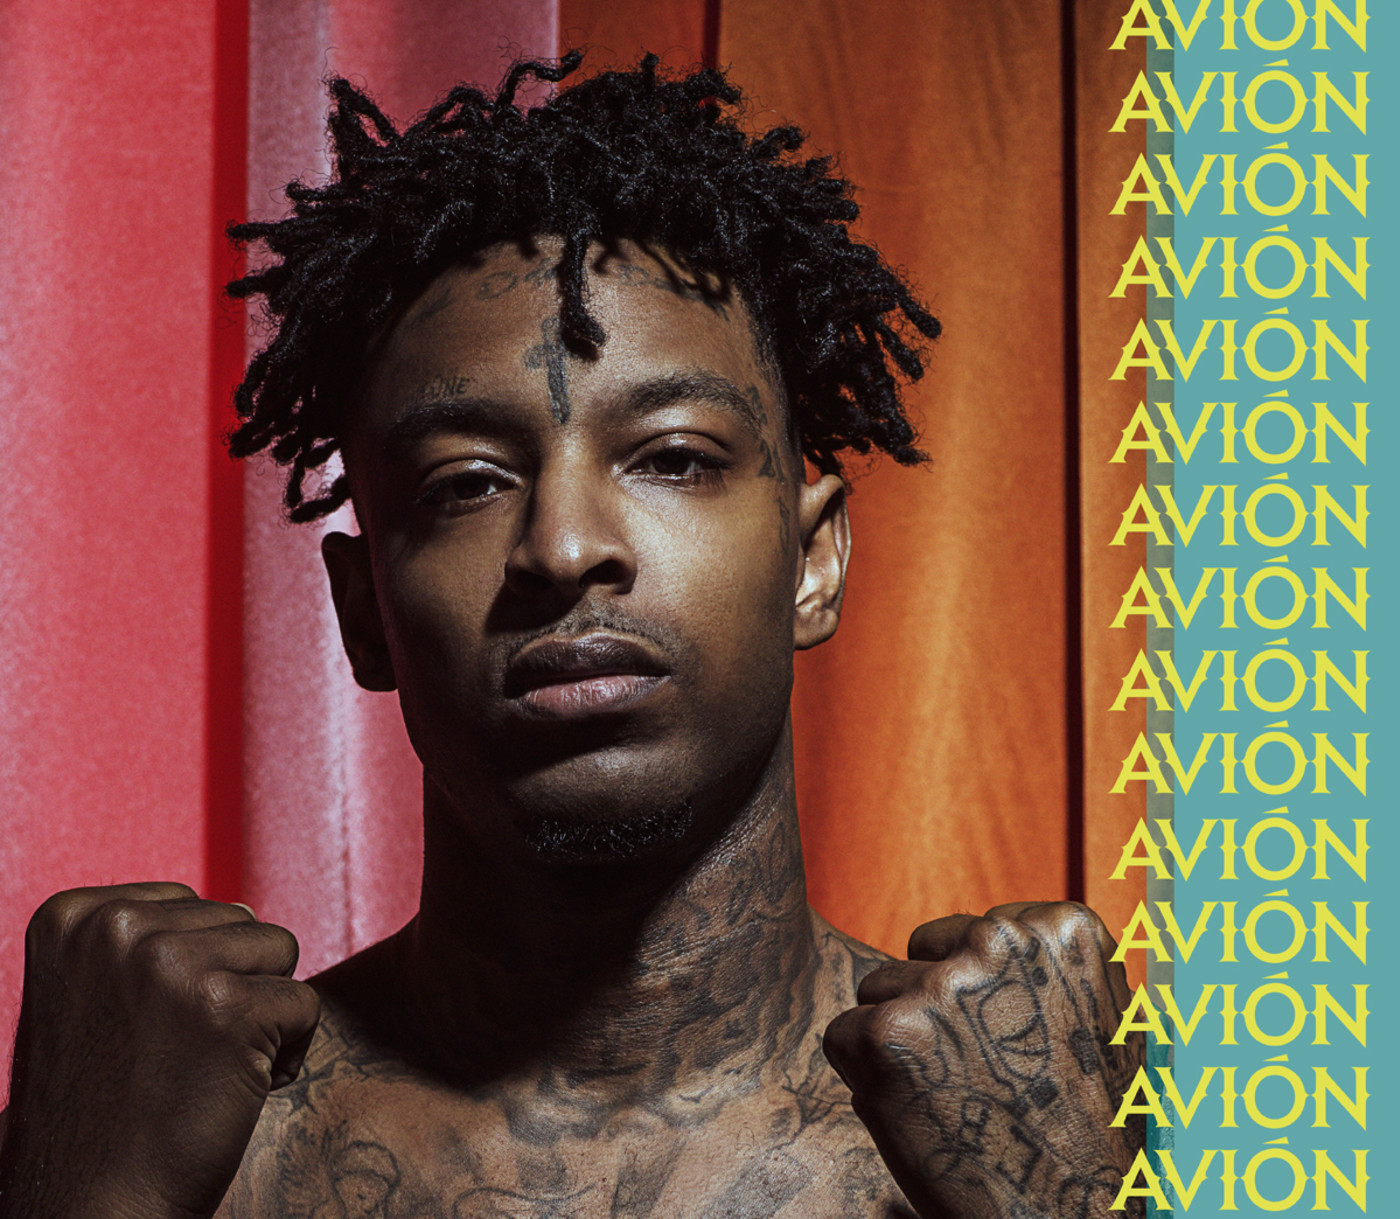 21-savage-avion-image